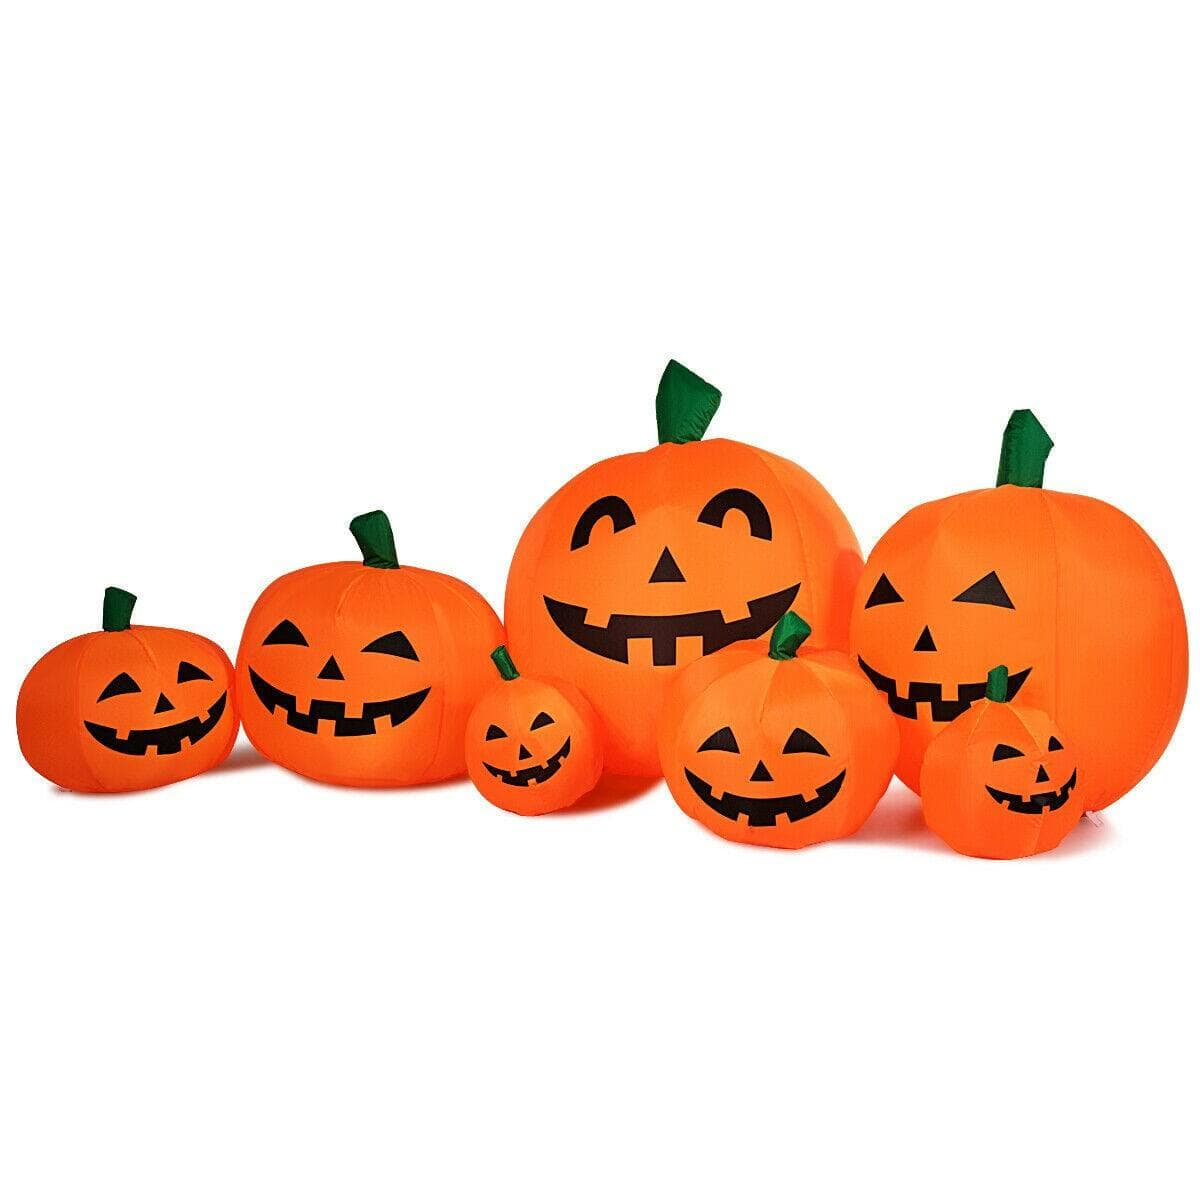 Costway 7.5 Feet Halloween Inflatable 7 Pumpkins Patch with LED Lights $39.95 + Free Shipping